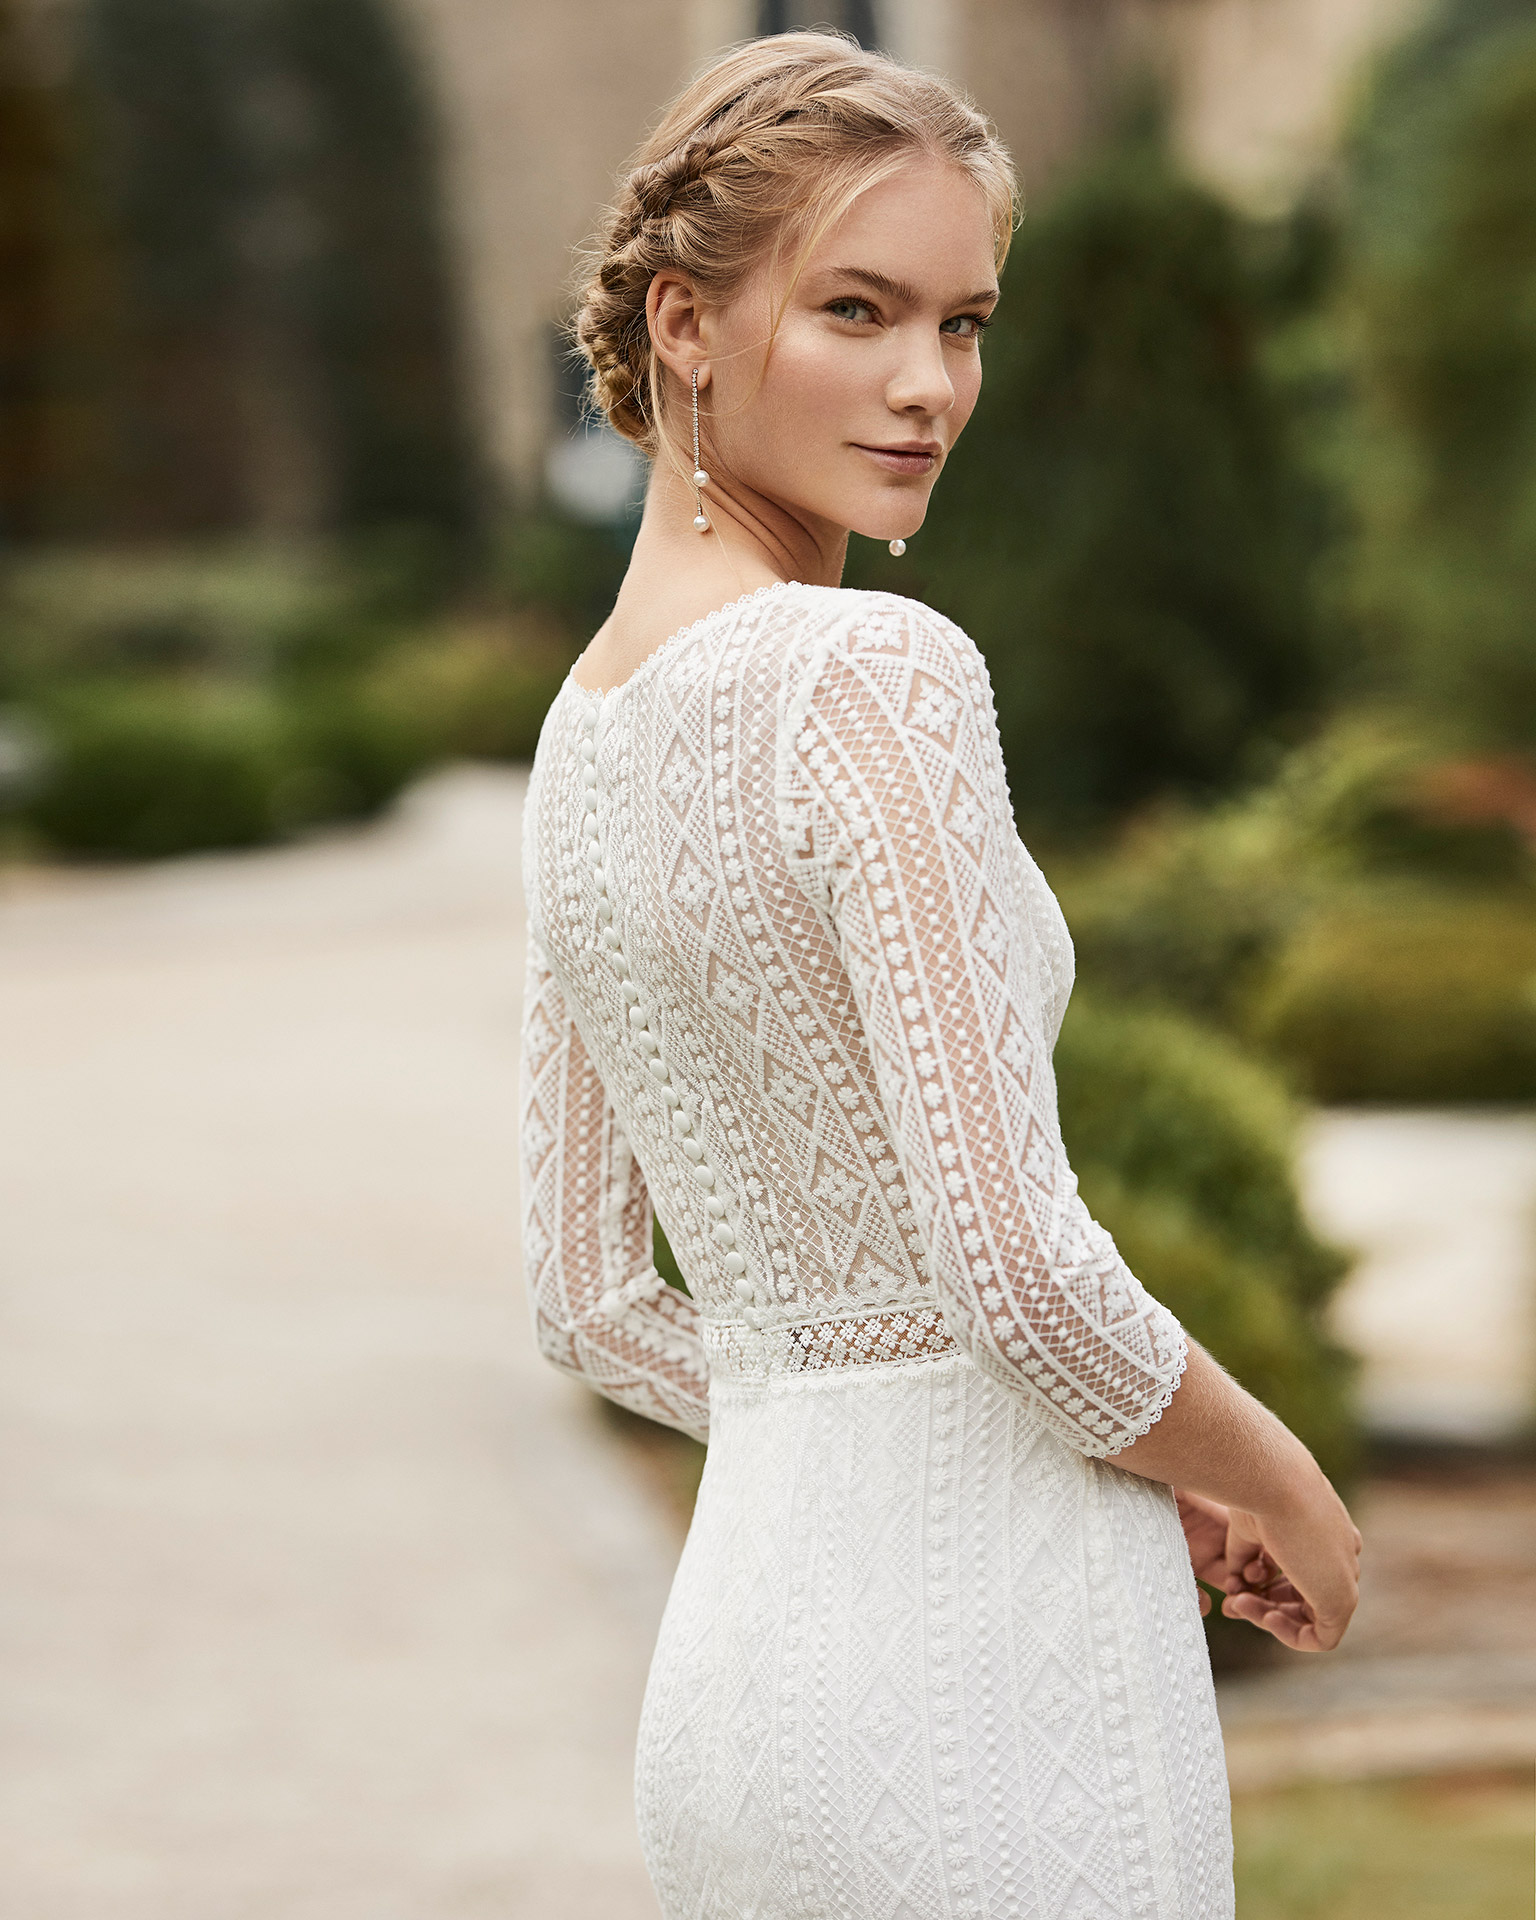 Lace wedding dress. V-neckline, three-quarter sleeves in lace, beaded lace belt and closed back in lace. 2021 ALMANOVIA Collection.